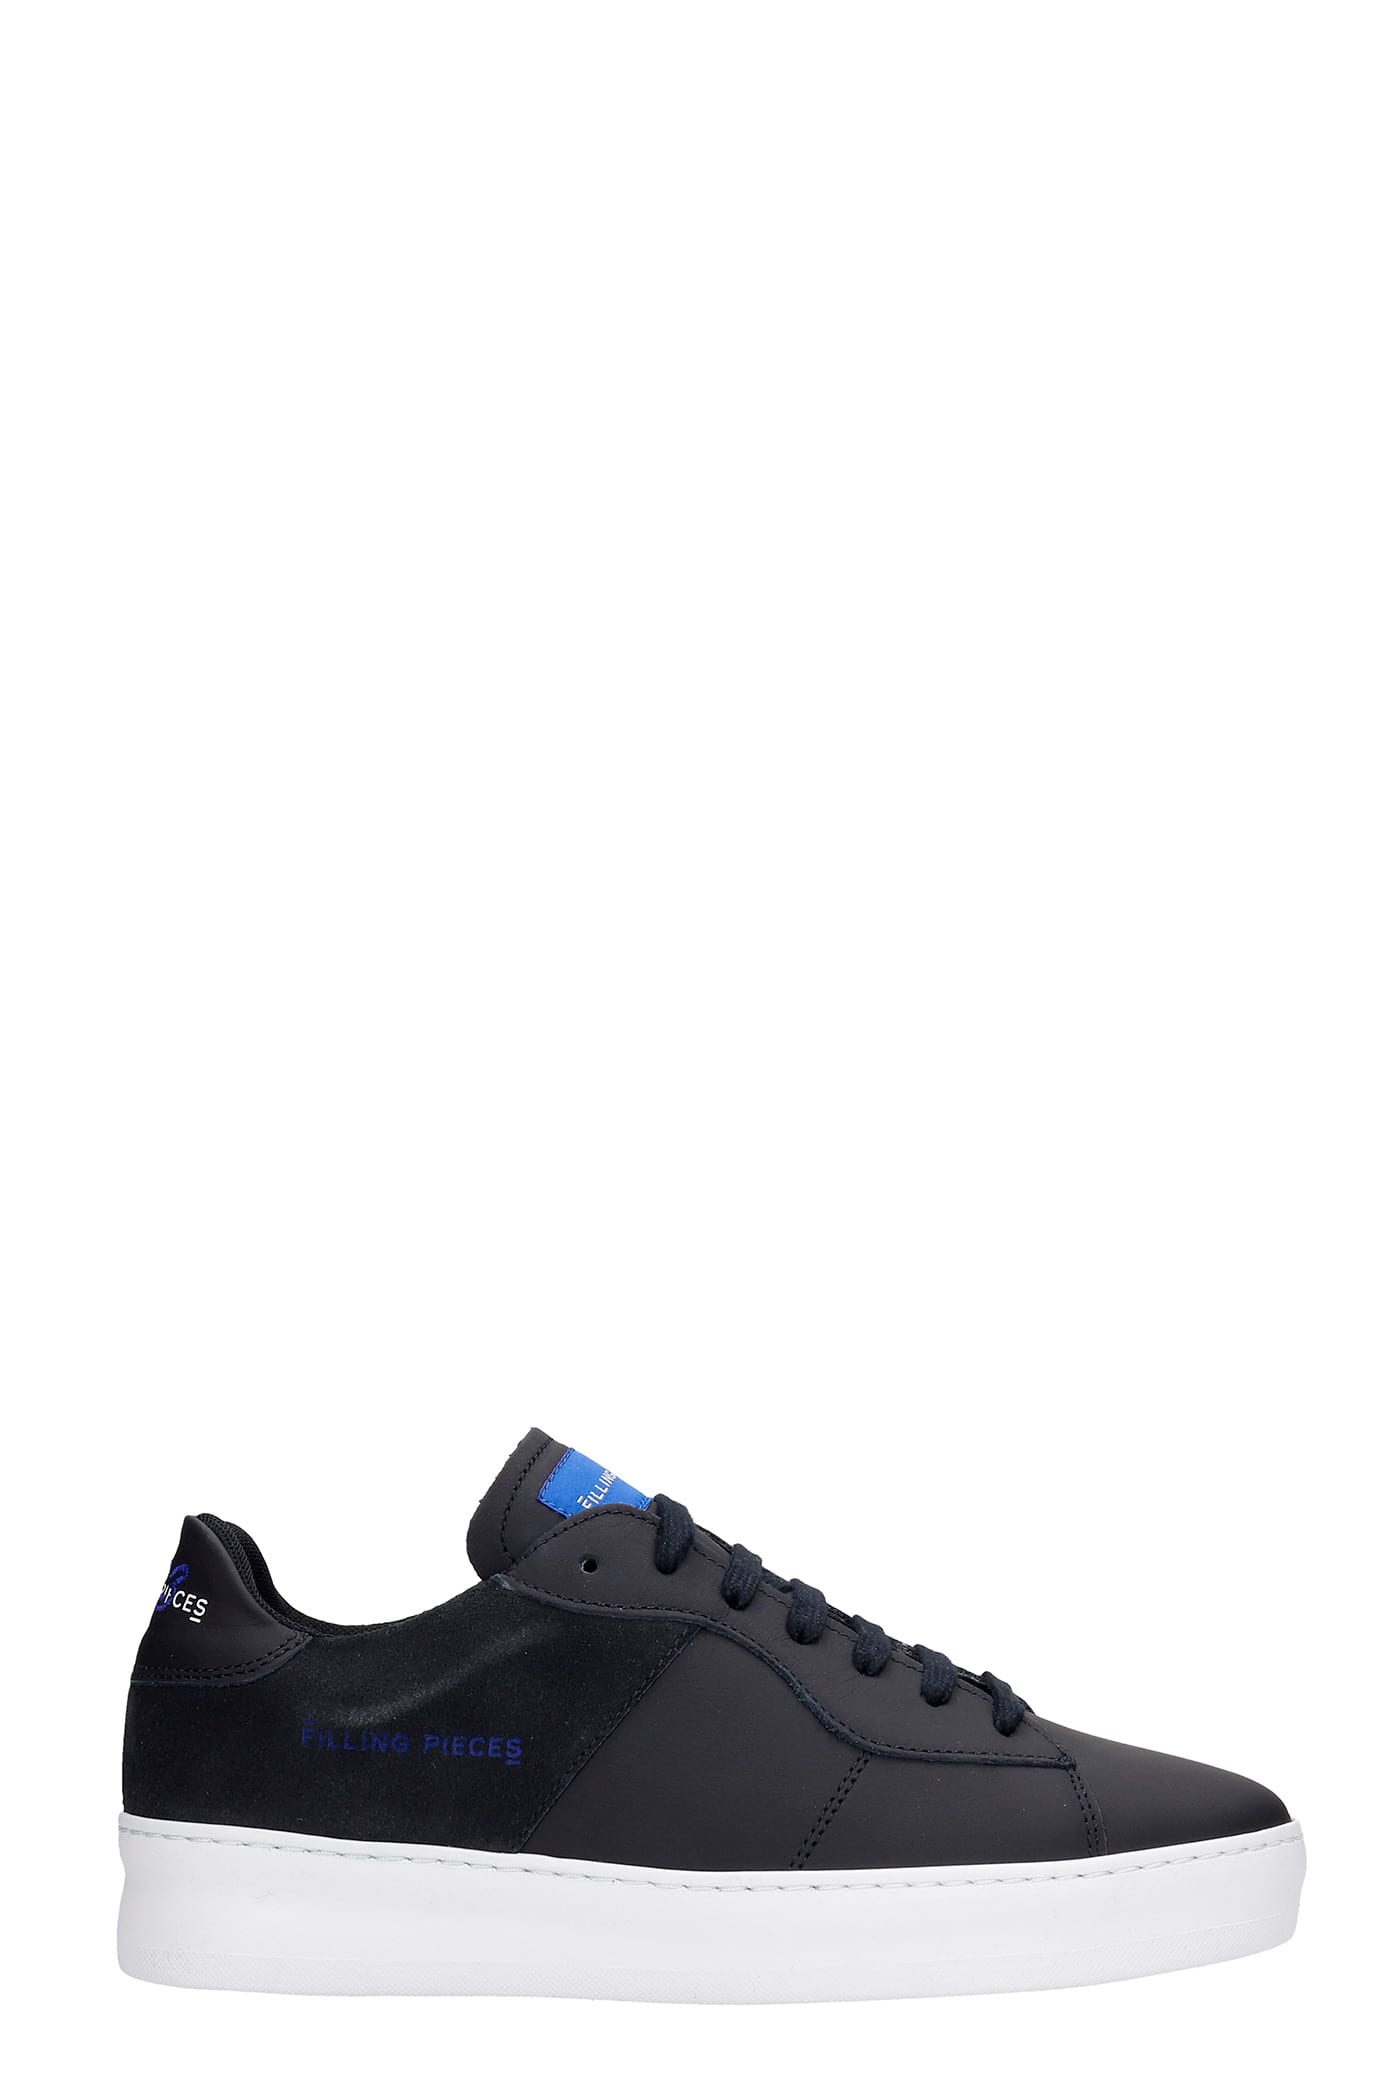 Low Plain Court Sneakers In Black Suede And Leather